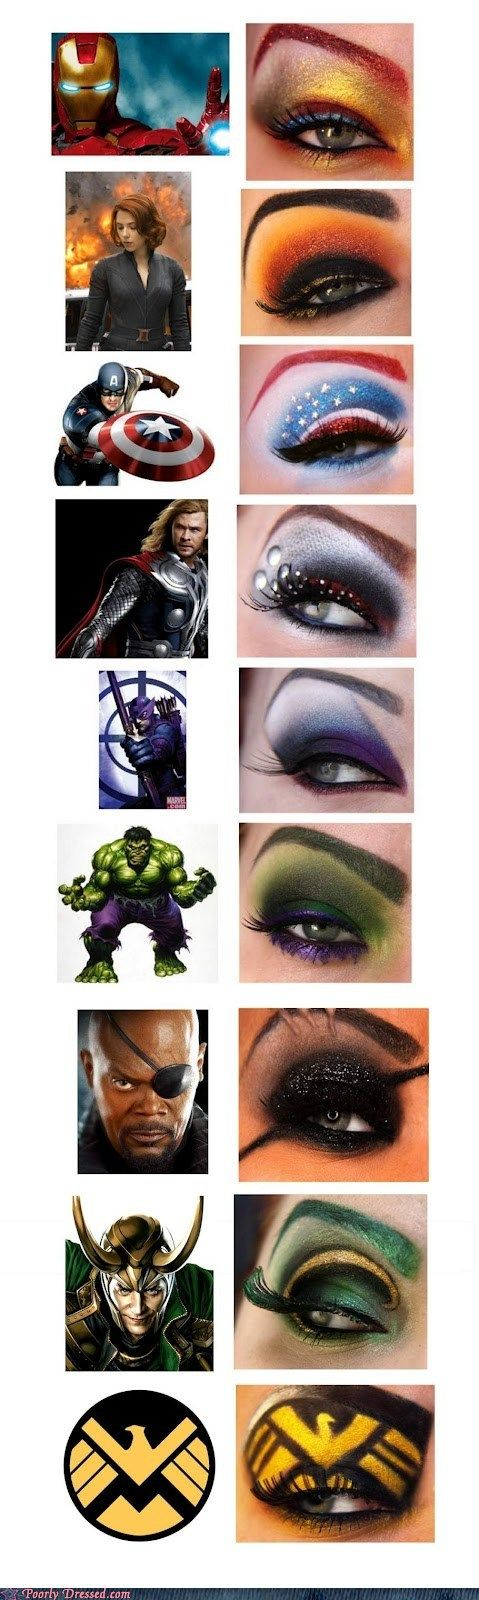 For the first time, I like Hawkeye and Hulk better than the others.